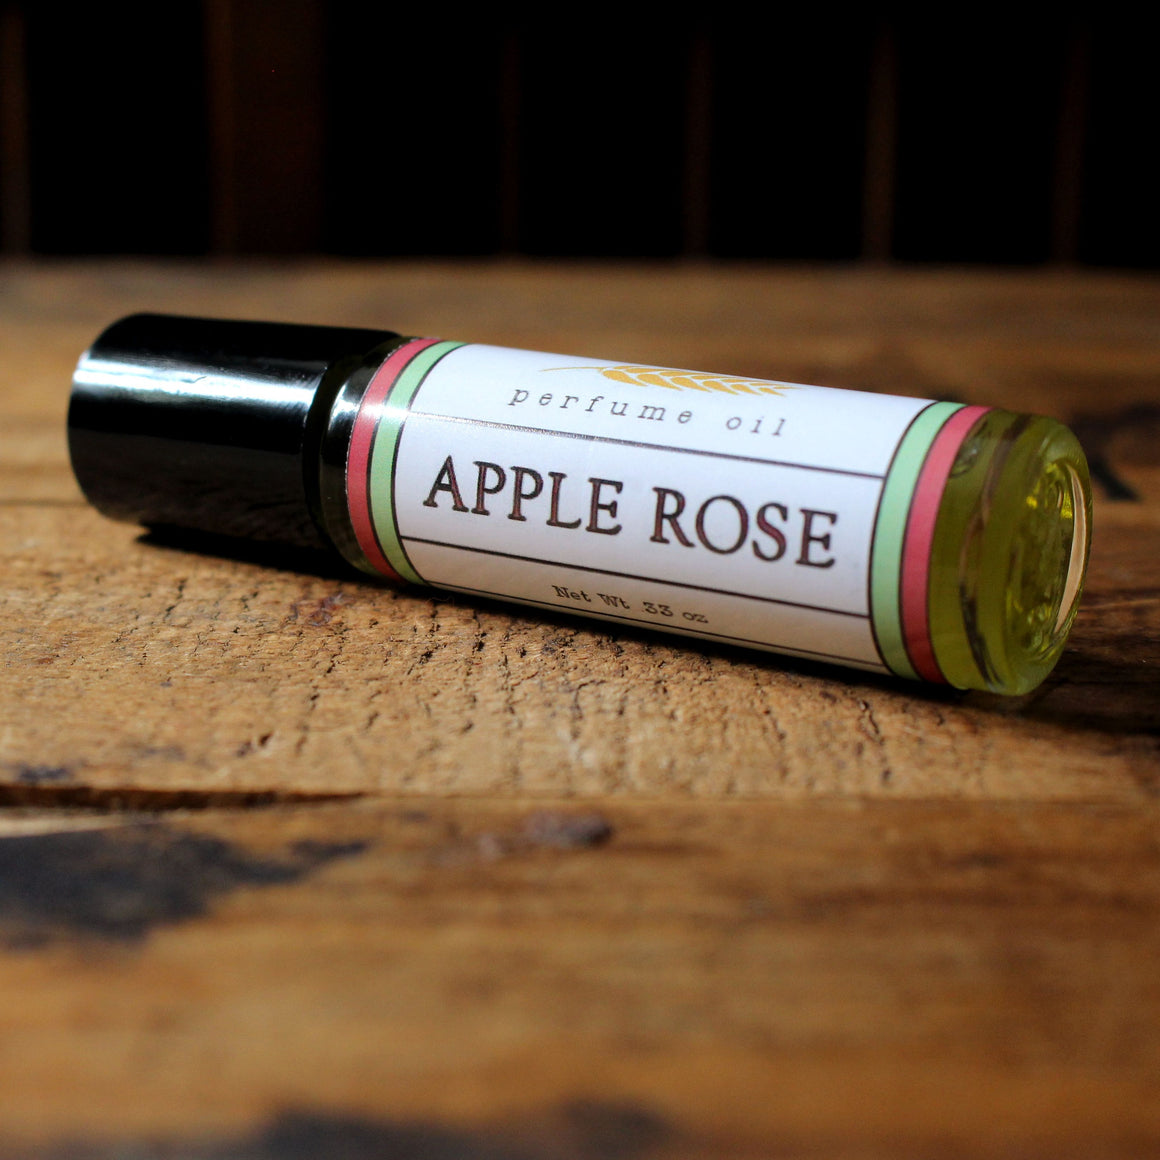 Apple Rose Perfume Oil